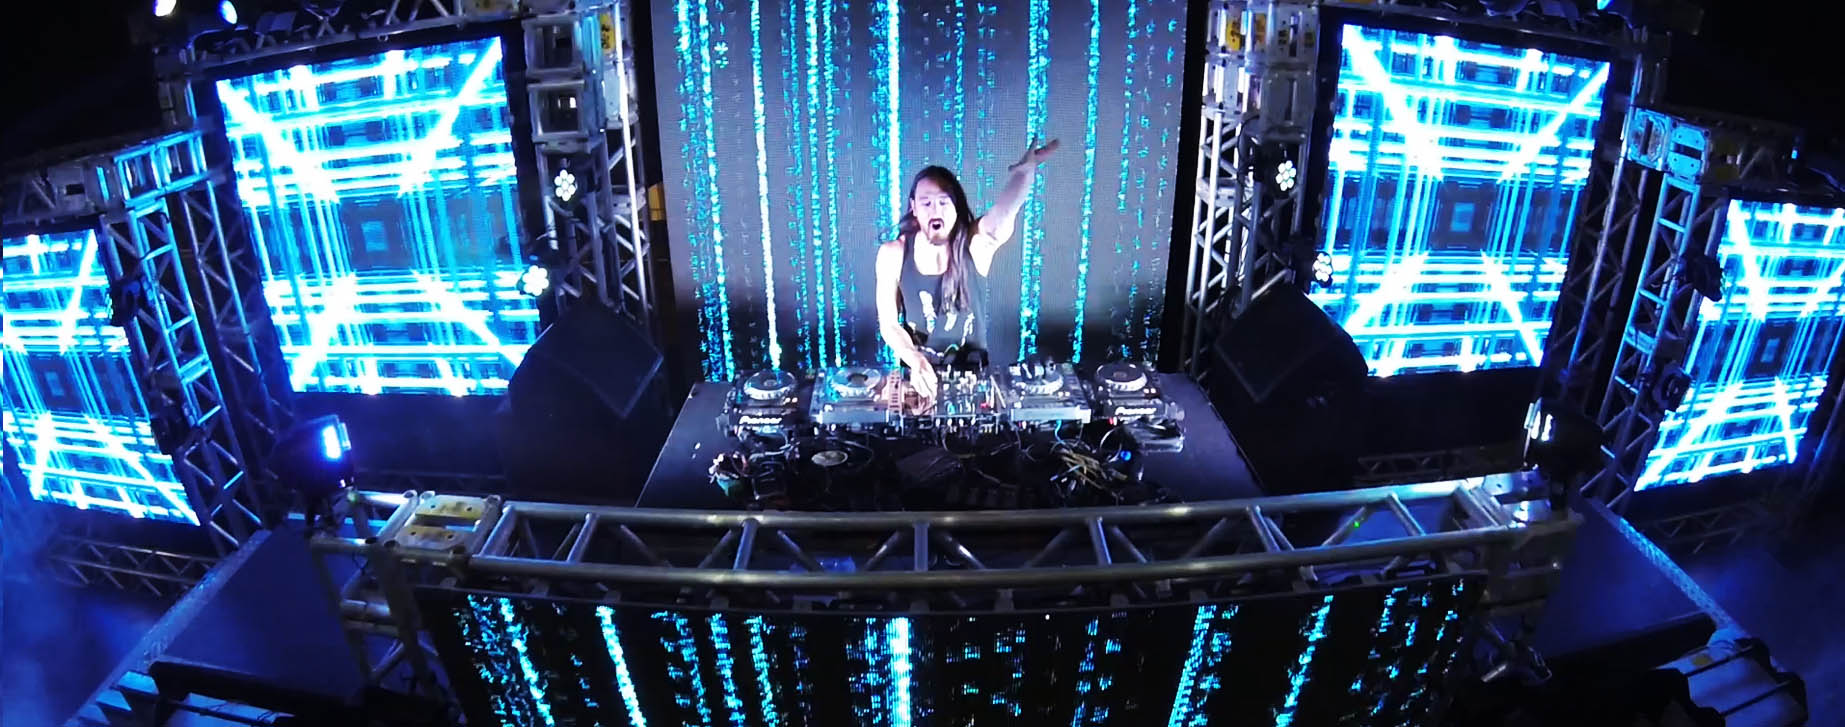 Steve Aoki Neon Future Tour visuals